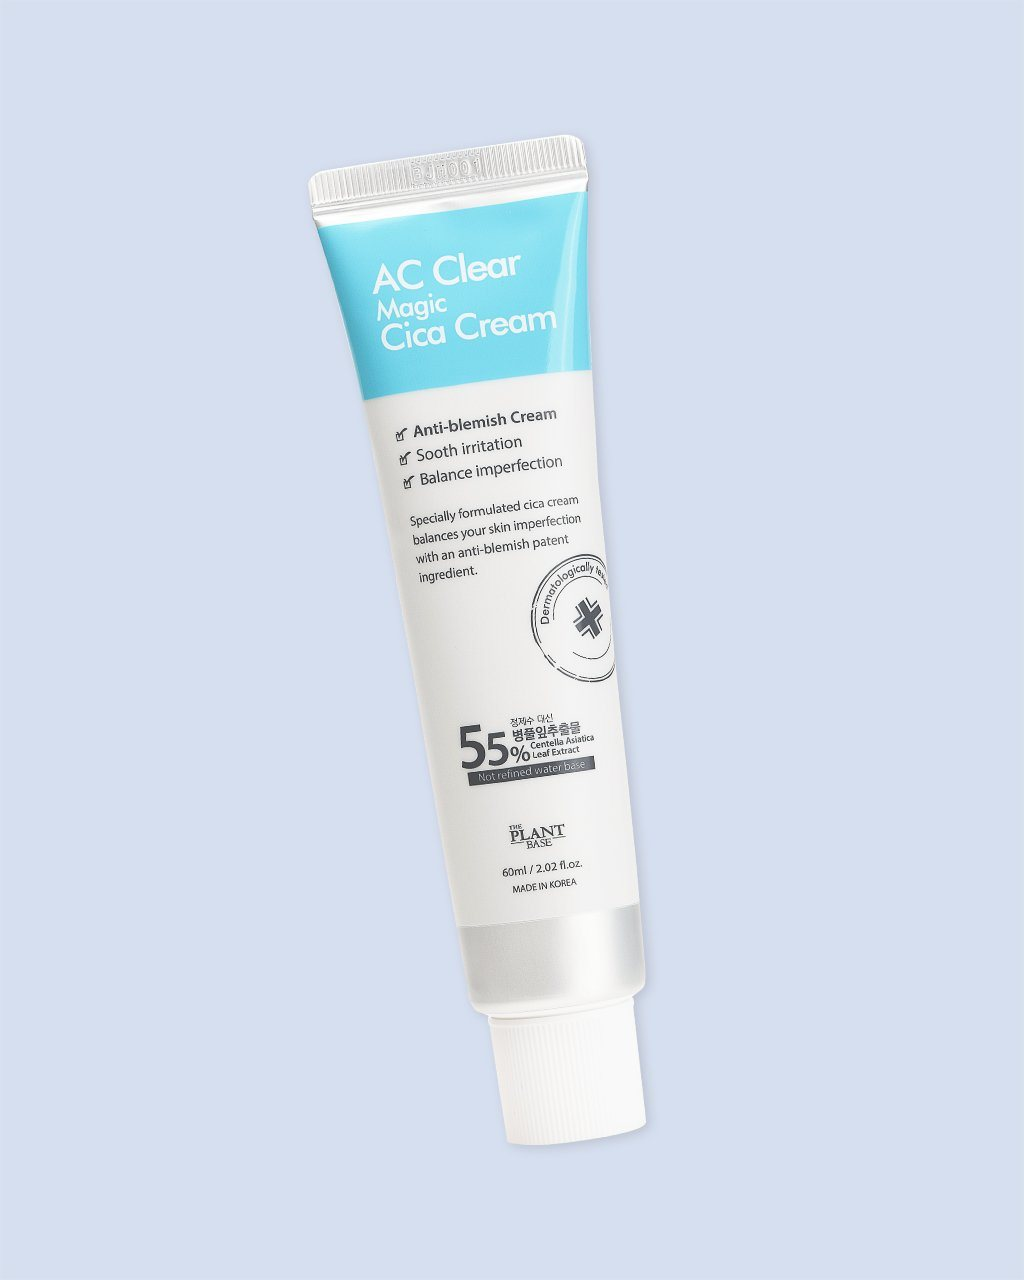 AC Clear Magic Cica Cream